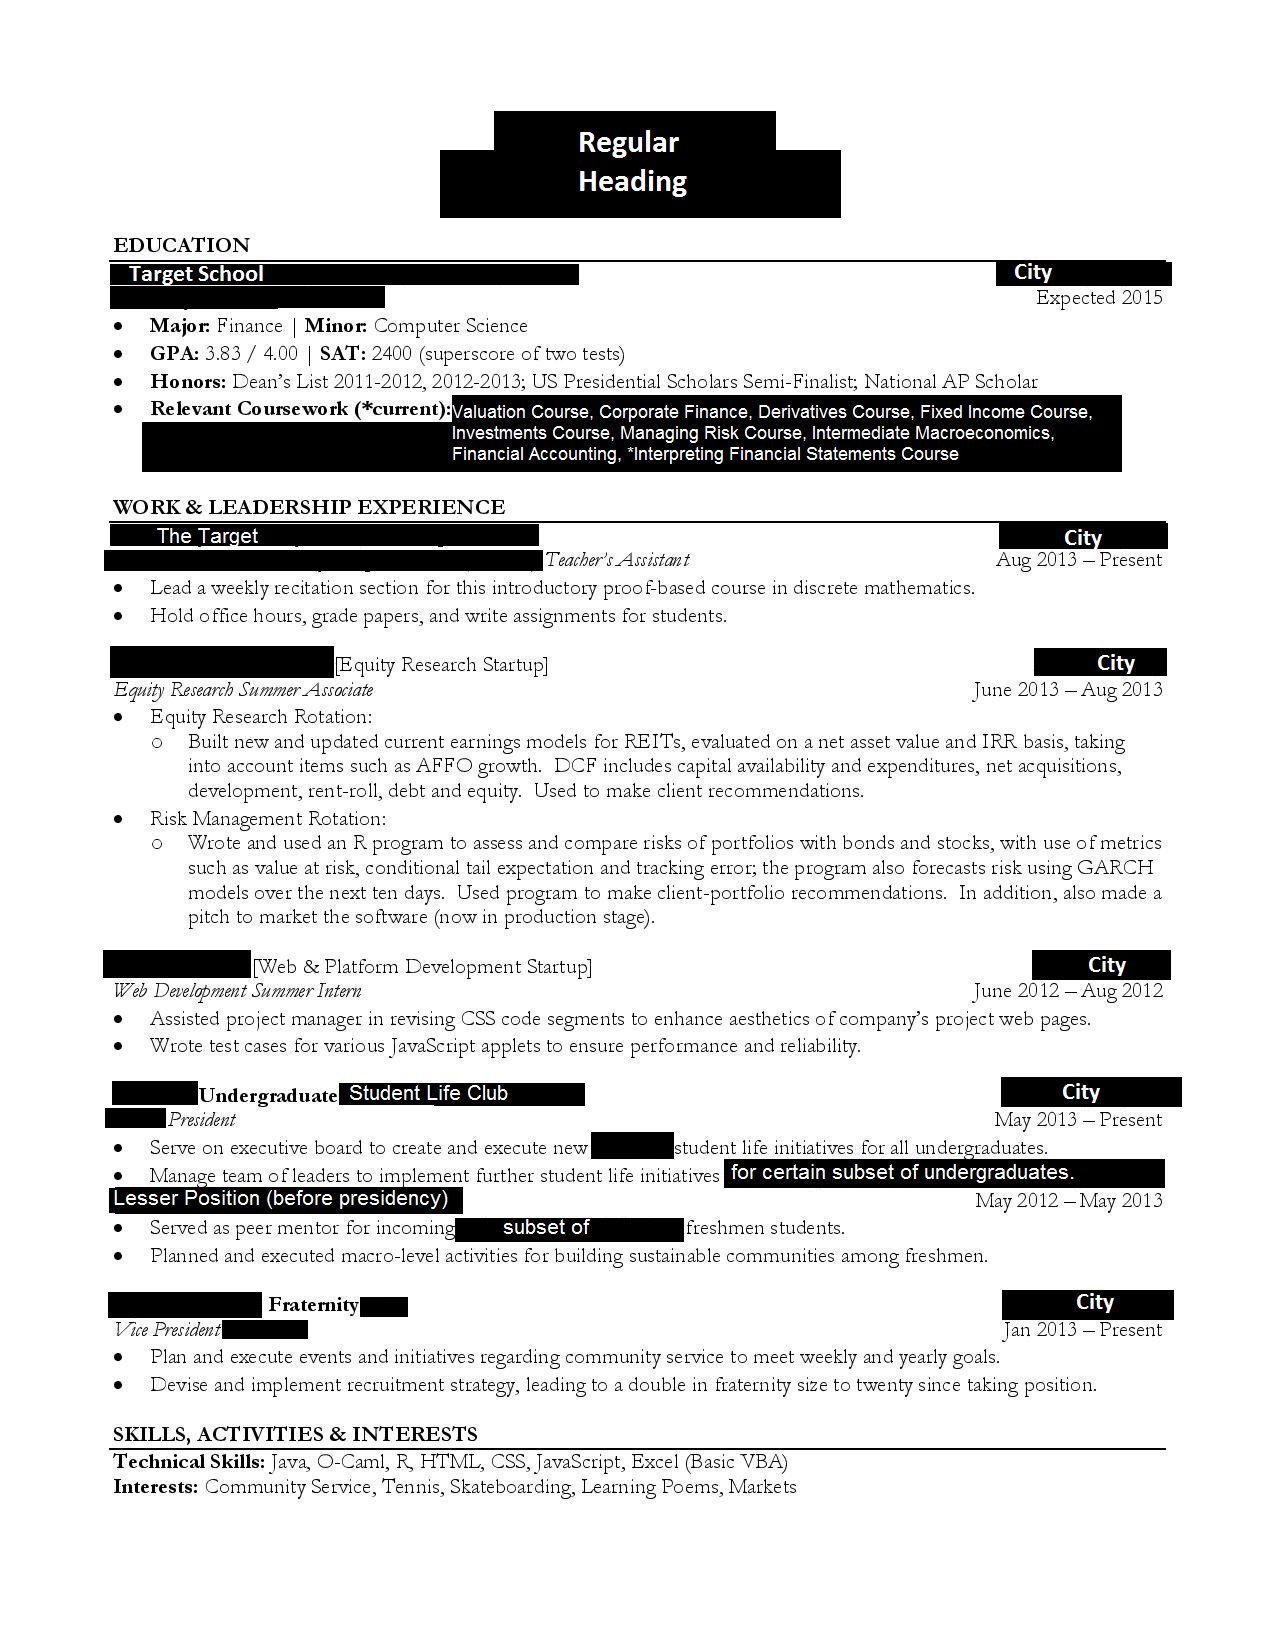 Wall Street Oasis Resume Template - Wall Street Oasis Resume Review Essay Online the University Of